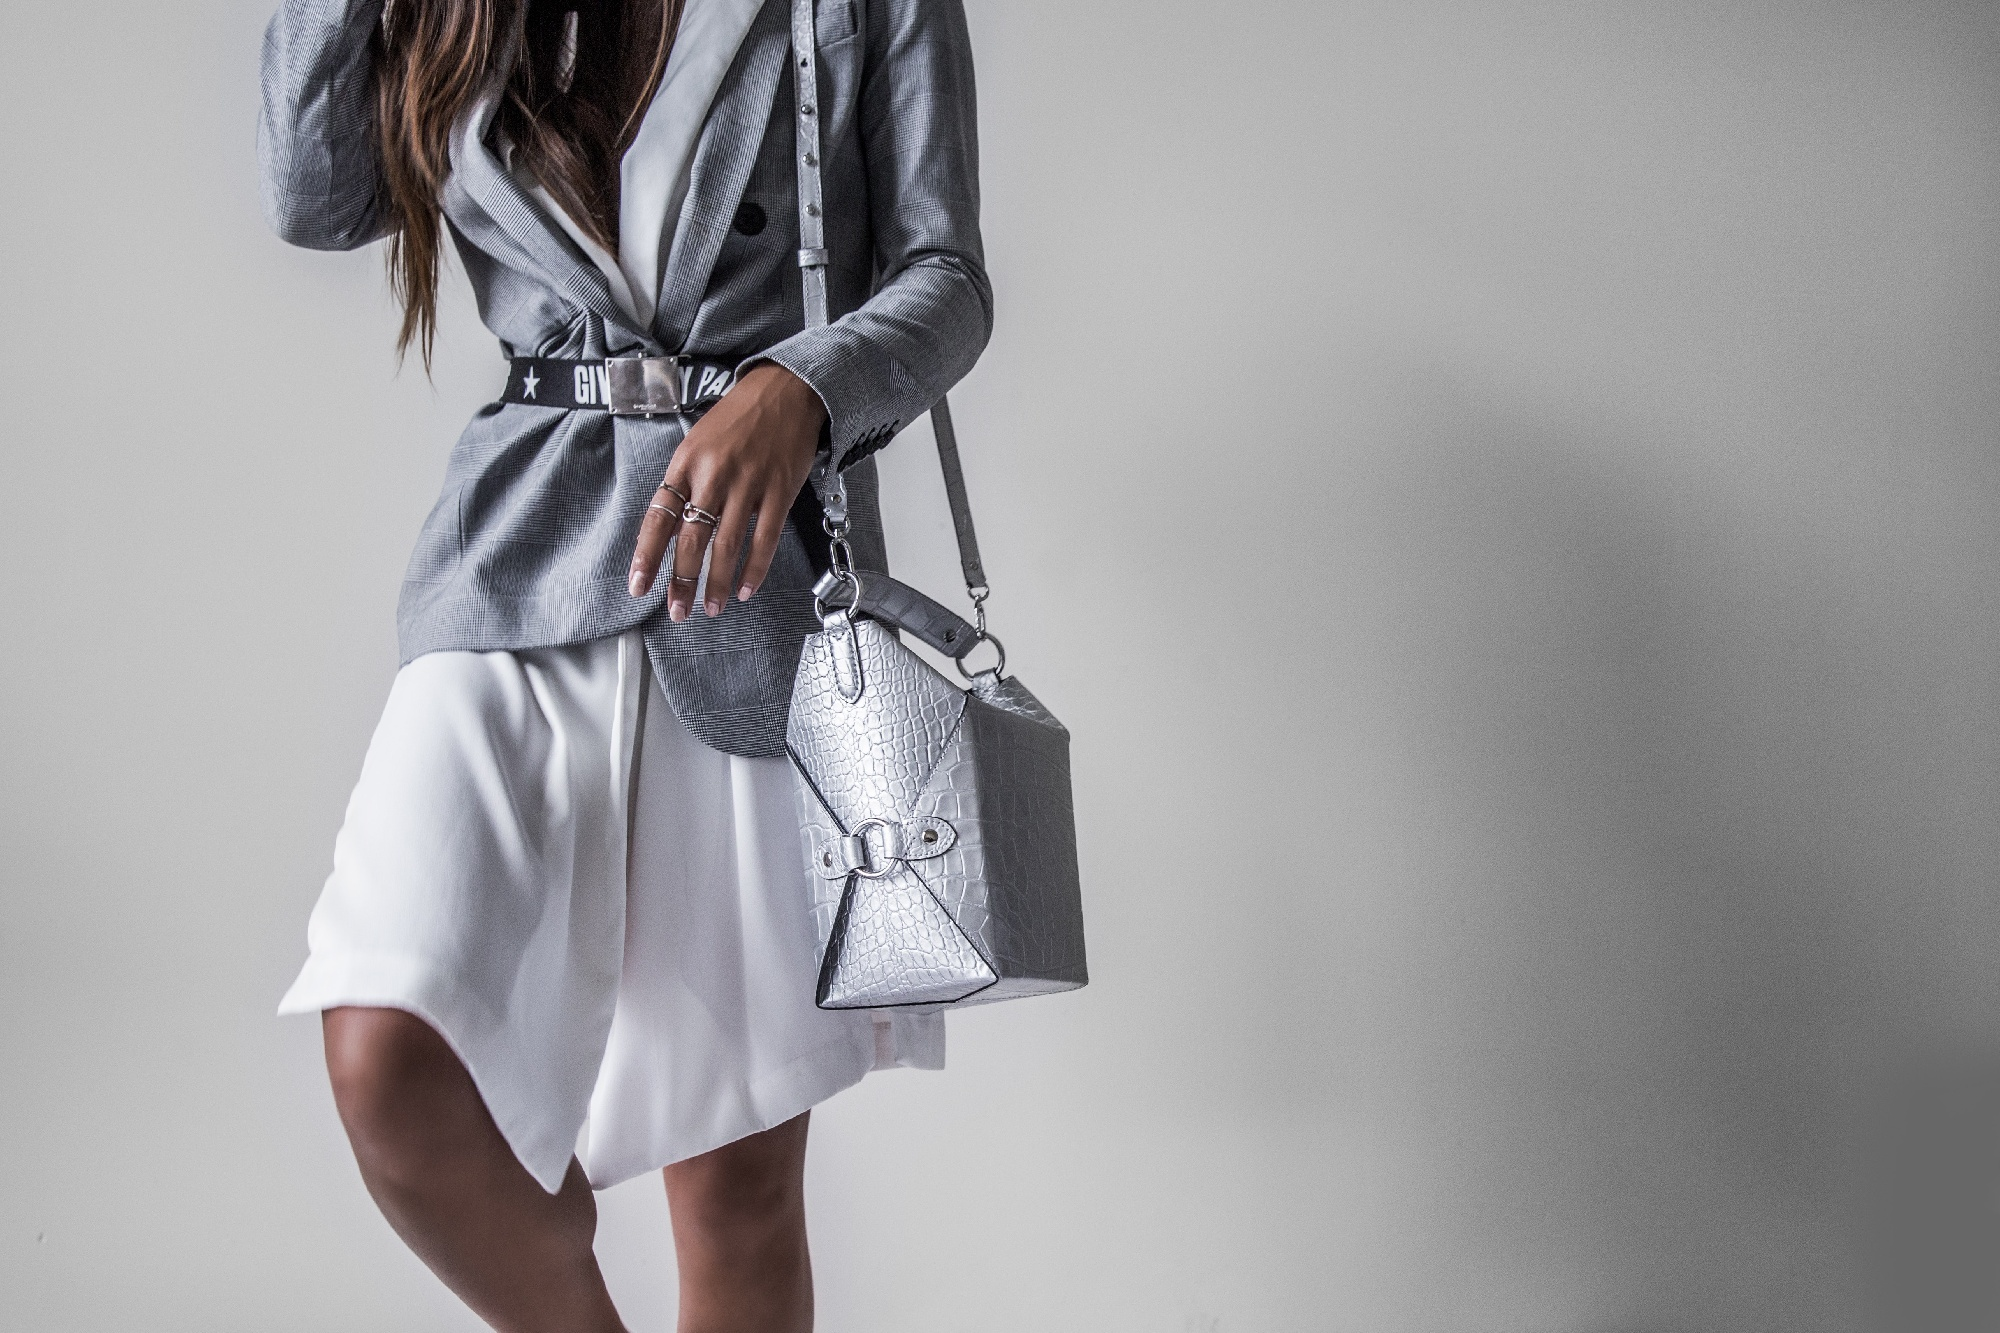 MakersValley Blog | What Makes a High-End Clothing Line High-End?